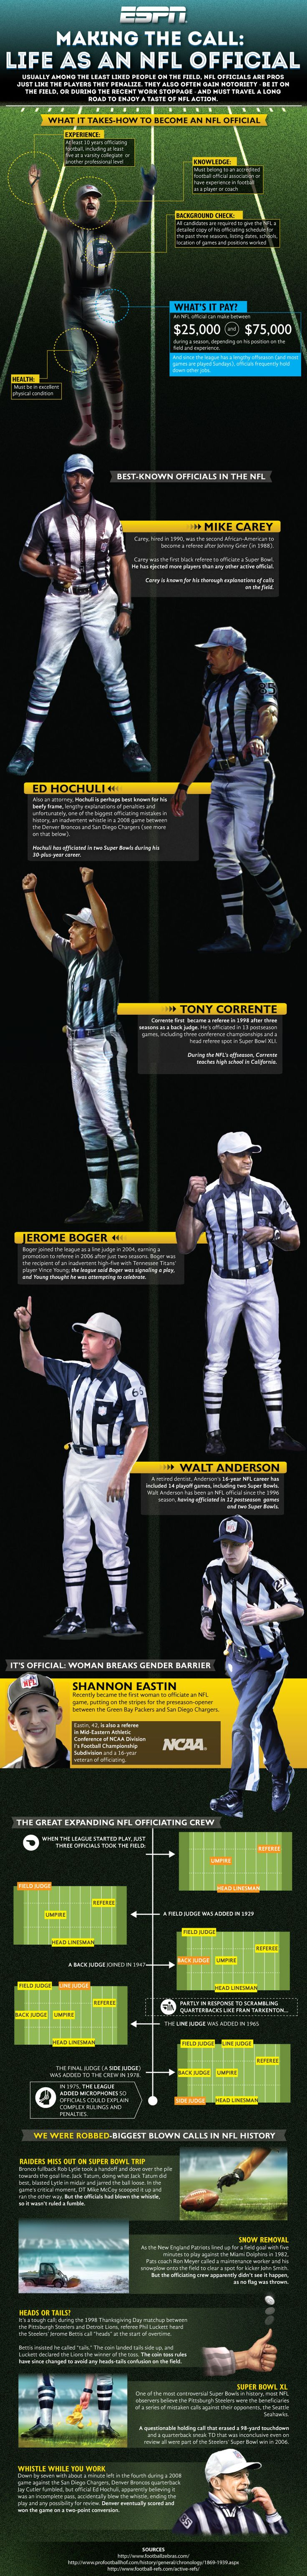 Social Media Examines The Life Of An NFL Official (INFOGRAPHIC) Replacement refs for the 2012 season will make approximately $59,000.